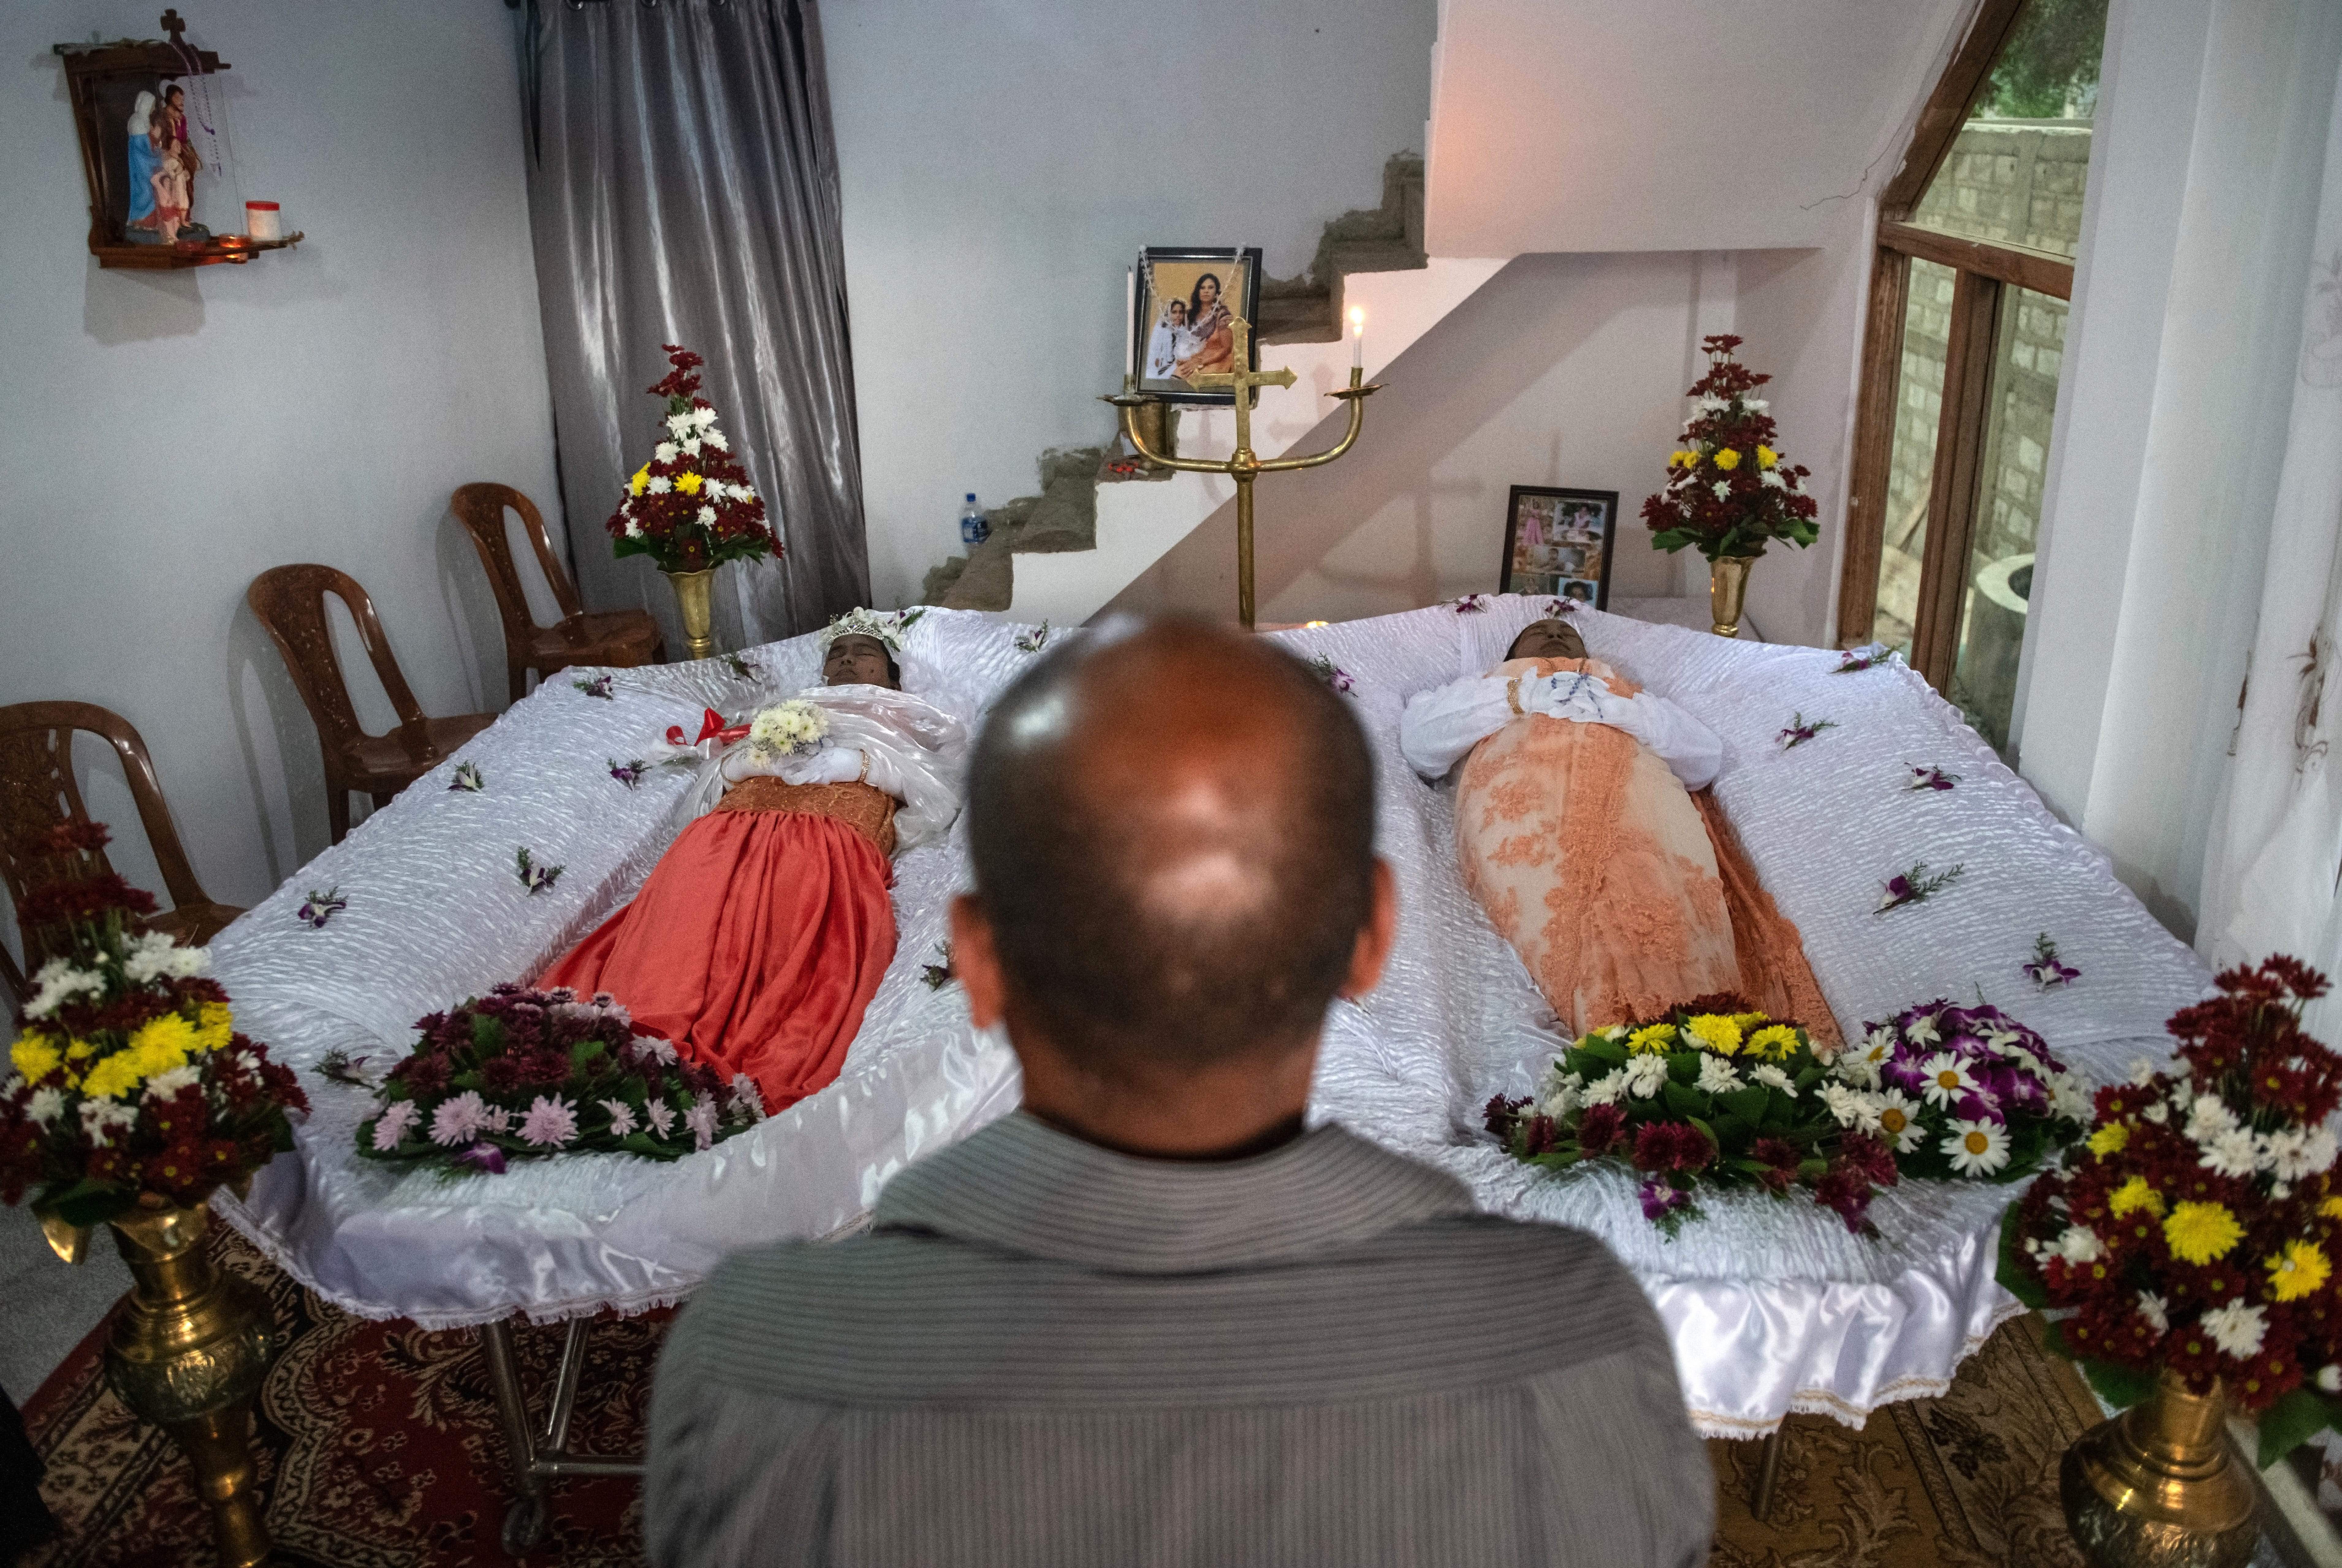 A family member looks at the bodies of 12-year-old Jiyasha Sheshani Janz, left, and her mother Dineesha Geethani de Vaas as they lie in their house during a wake after they were killed by a suicide bomber on Easter Sunday in Sri Lanka. Carl Court/Getty Images